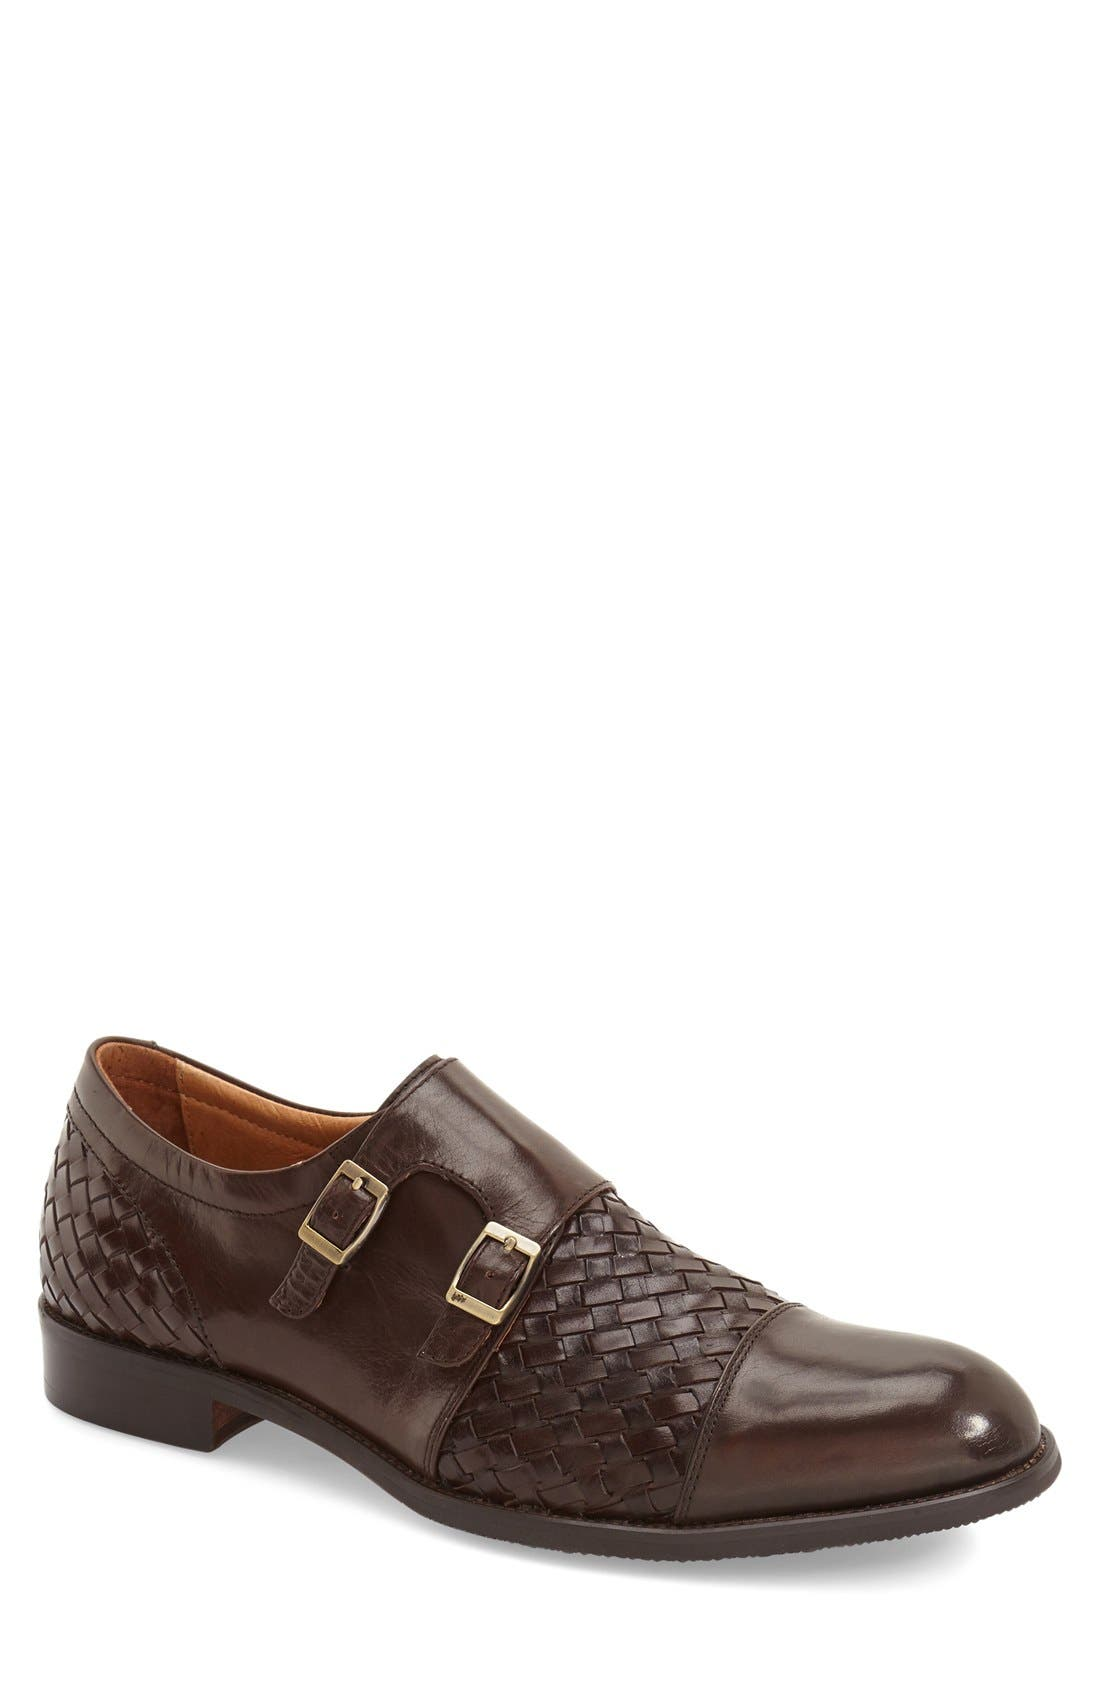 Main Image - Zanzara 'Mahler' Monk Strap Shoe (Men)